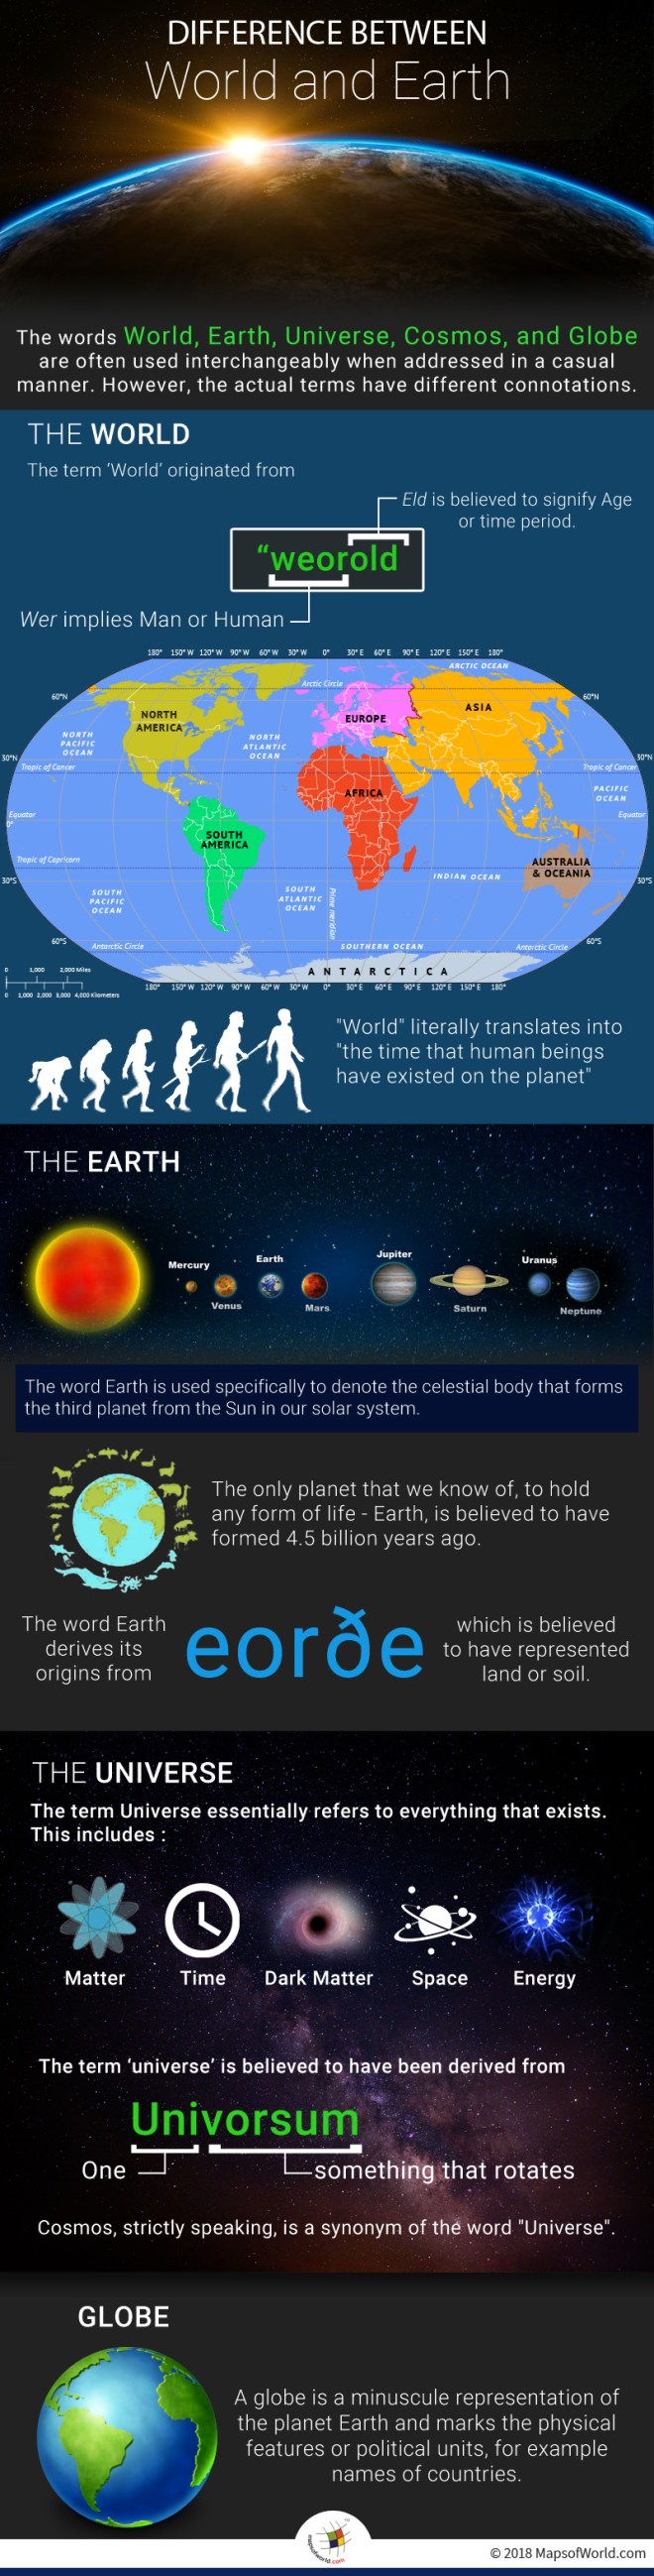 Infographic elaborating difference between World and Earth